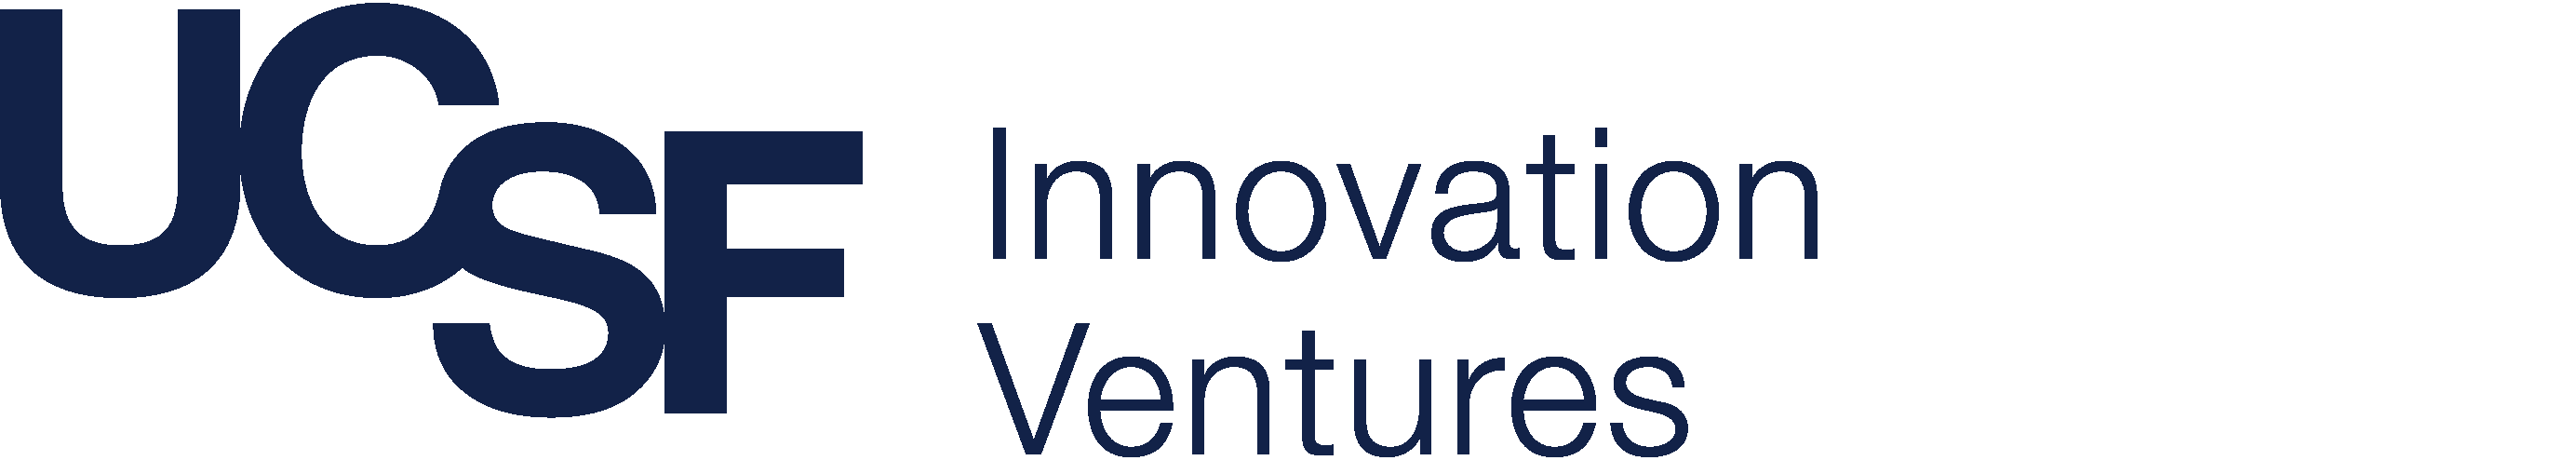 https://innovation.ucsf.edu/sites/venture.ucsf.edu/files/UCSF_sublogo_InnovationVentures_logo_navy_RGB-V3-01.png